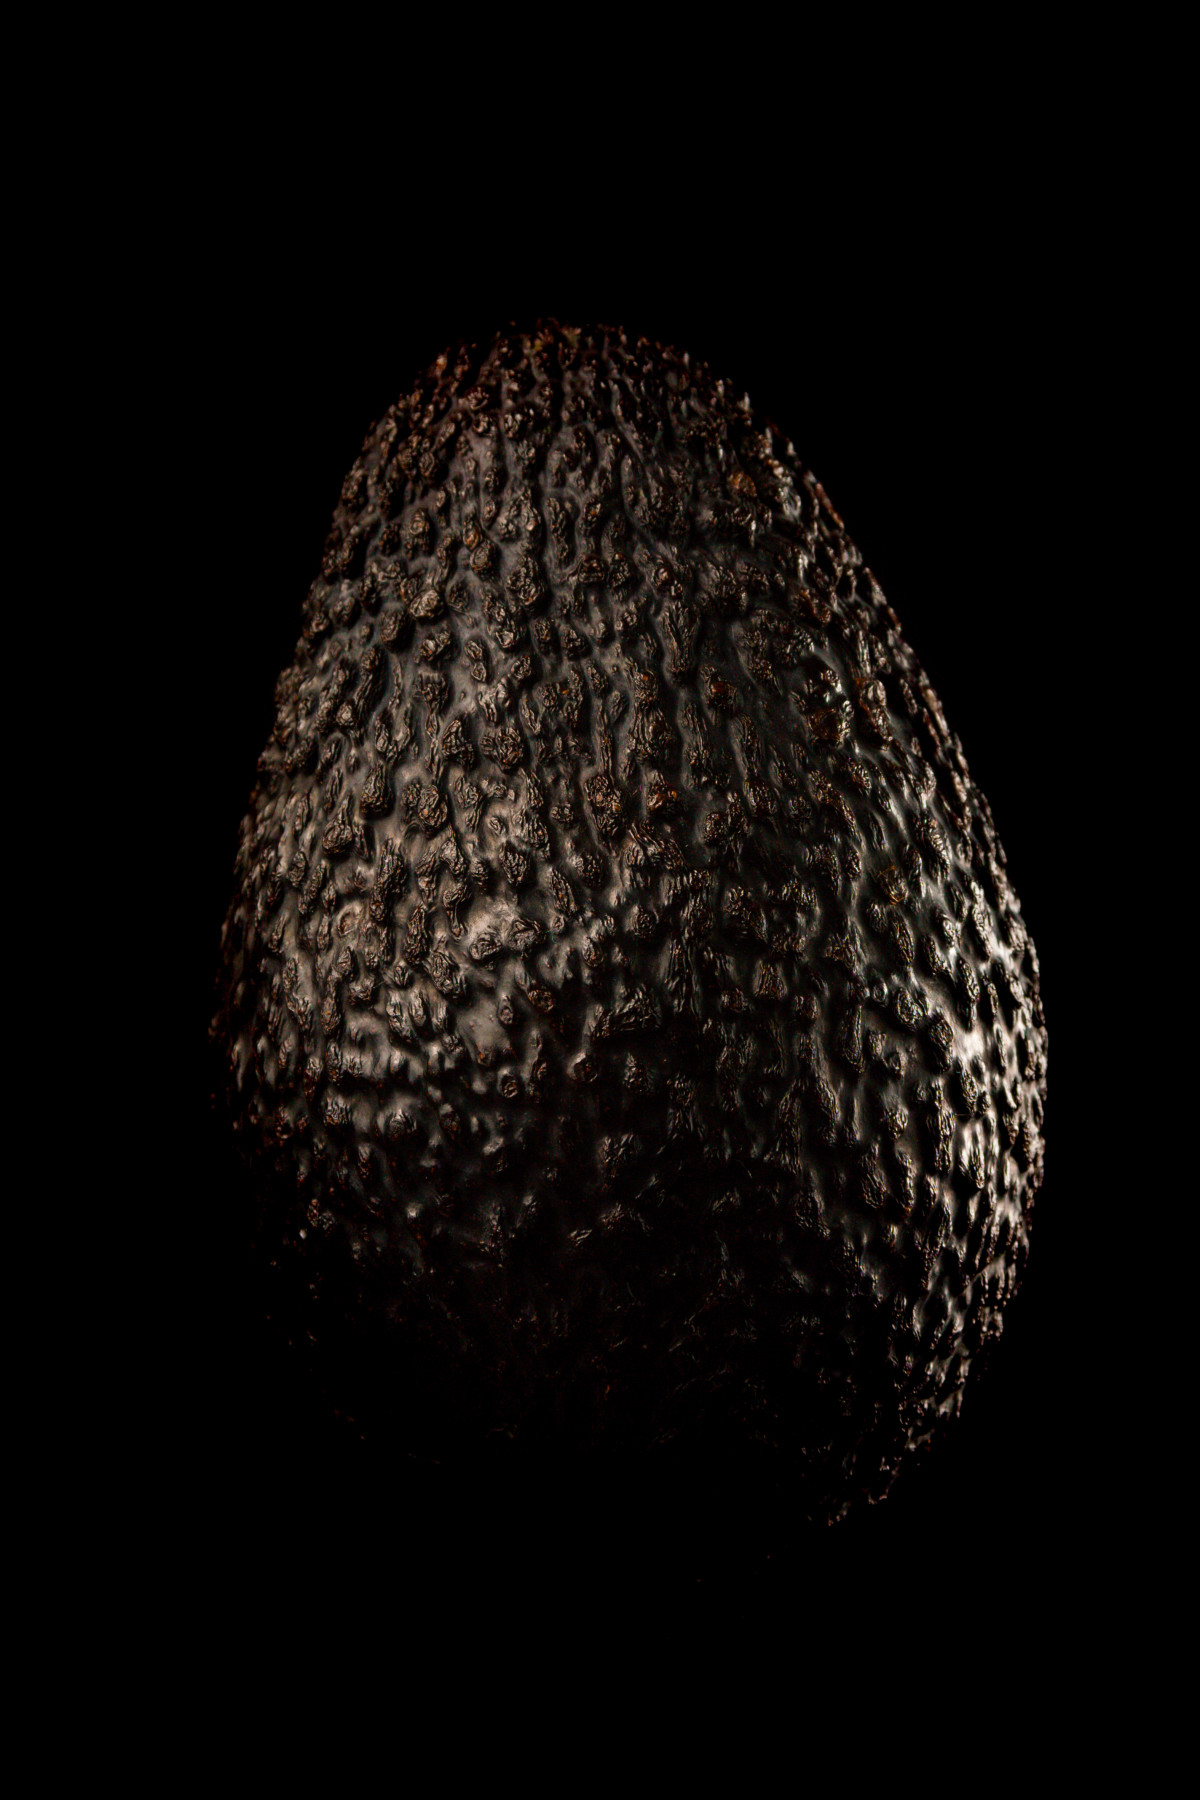 Portrait of the darkside of the avocado